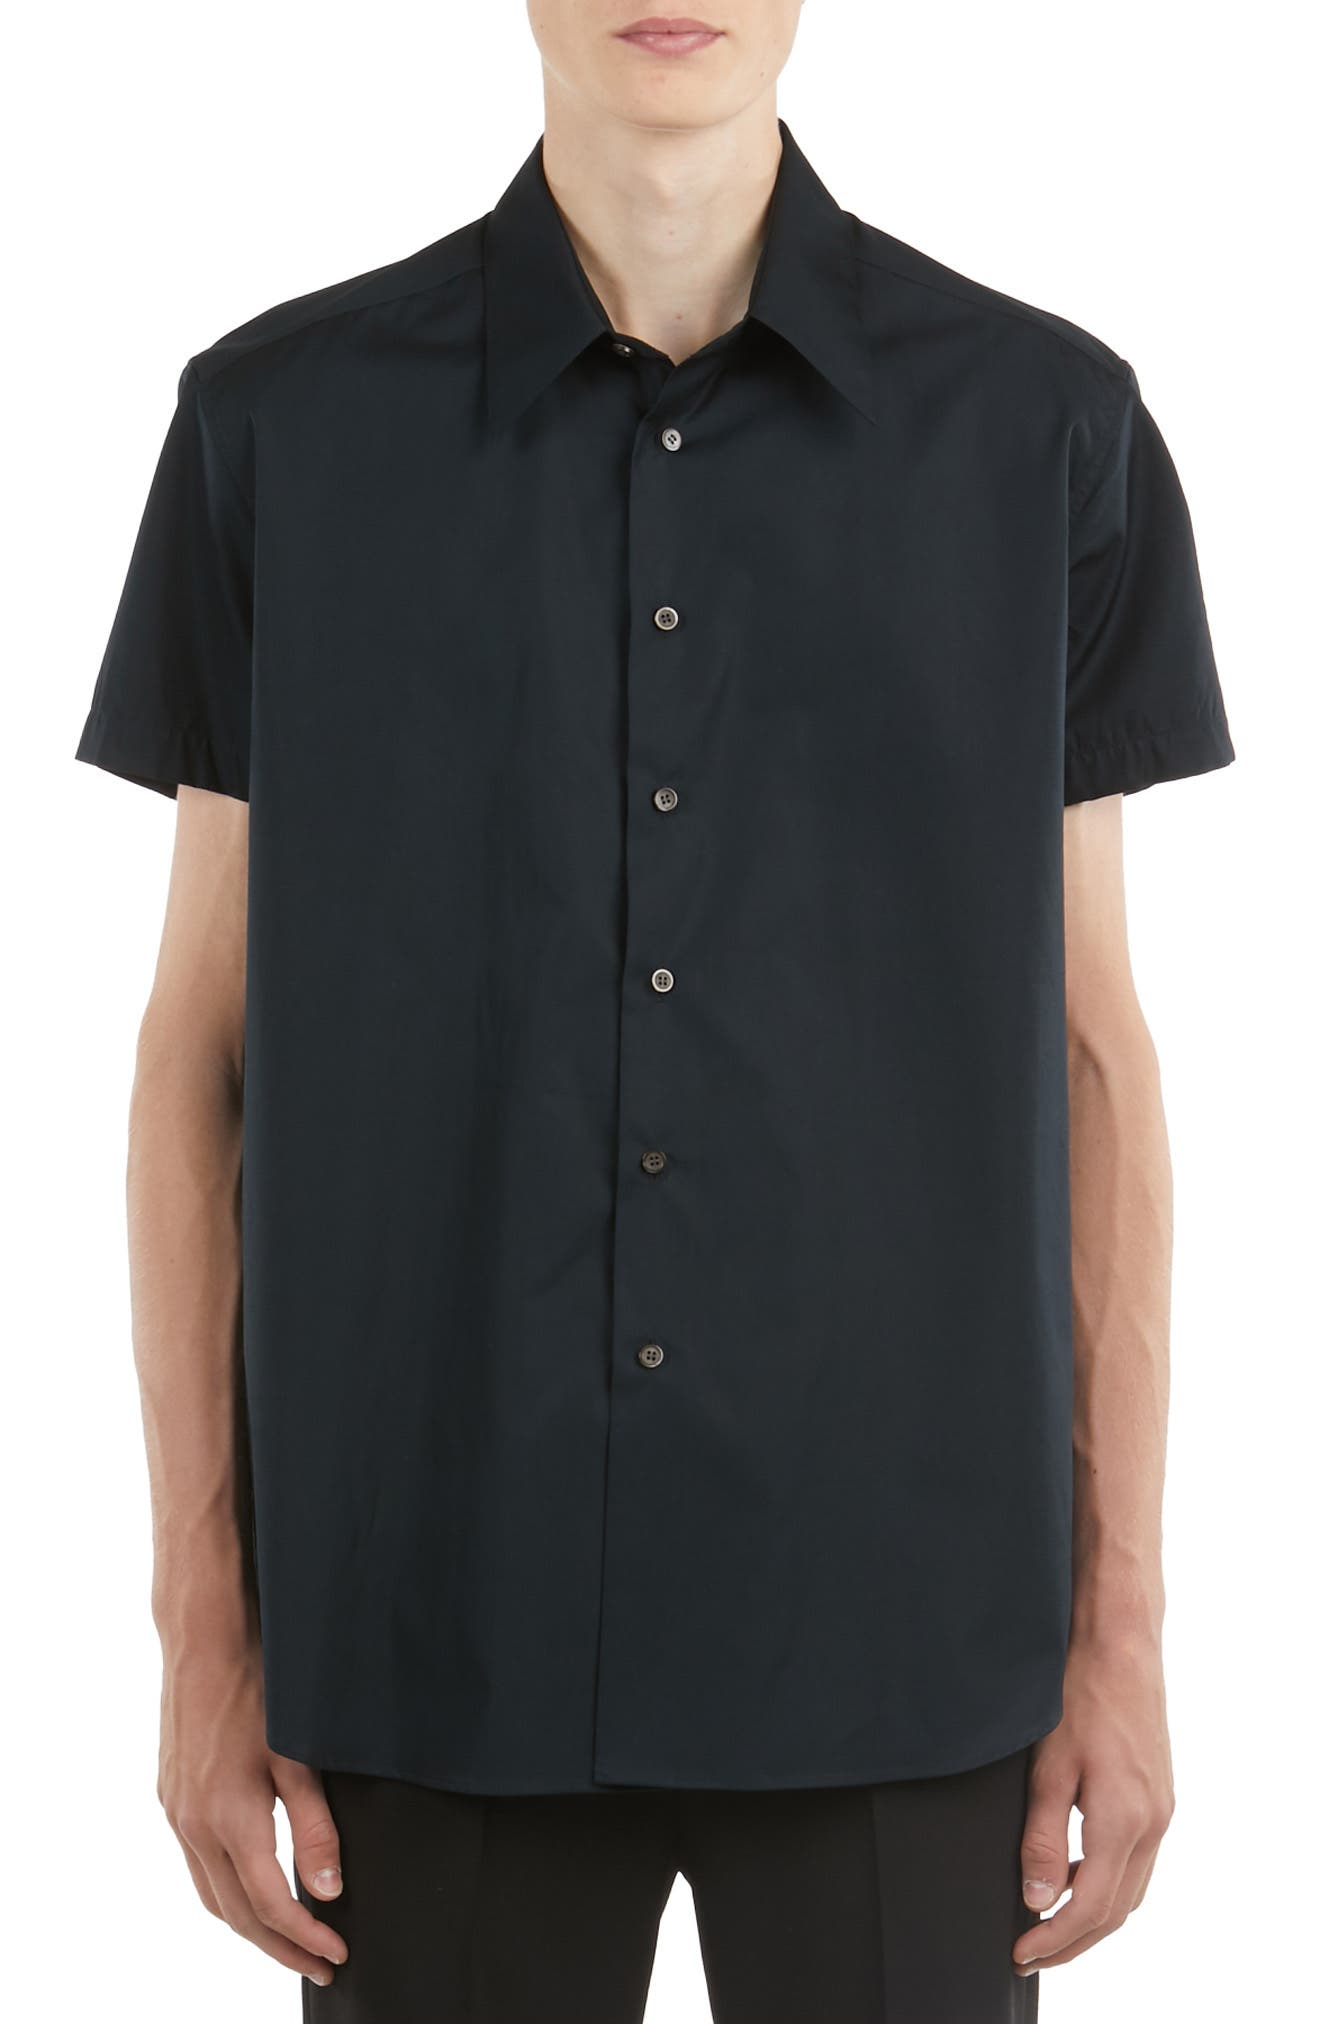 Logo Embroidered Woven Shirt, Main, color, BLACK